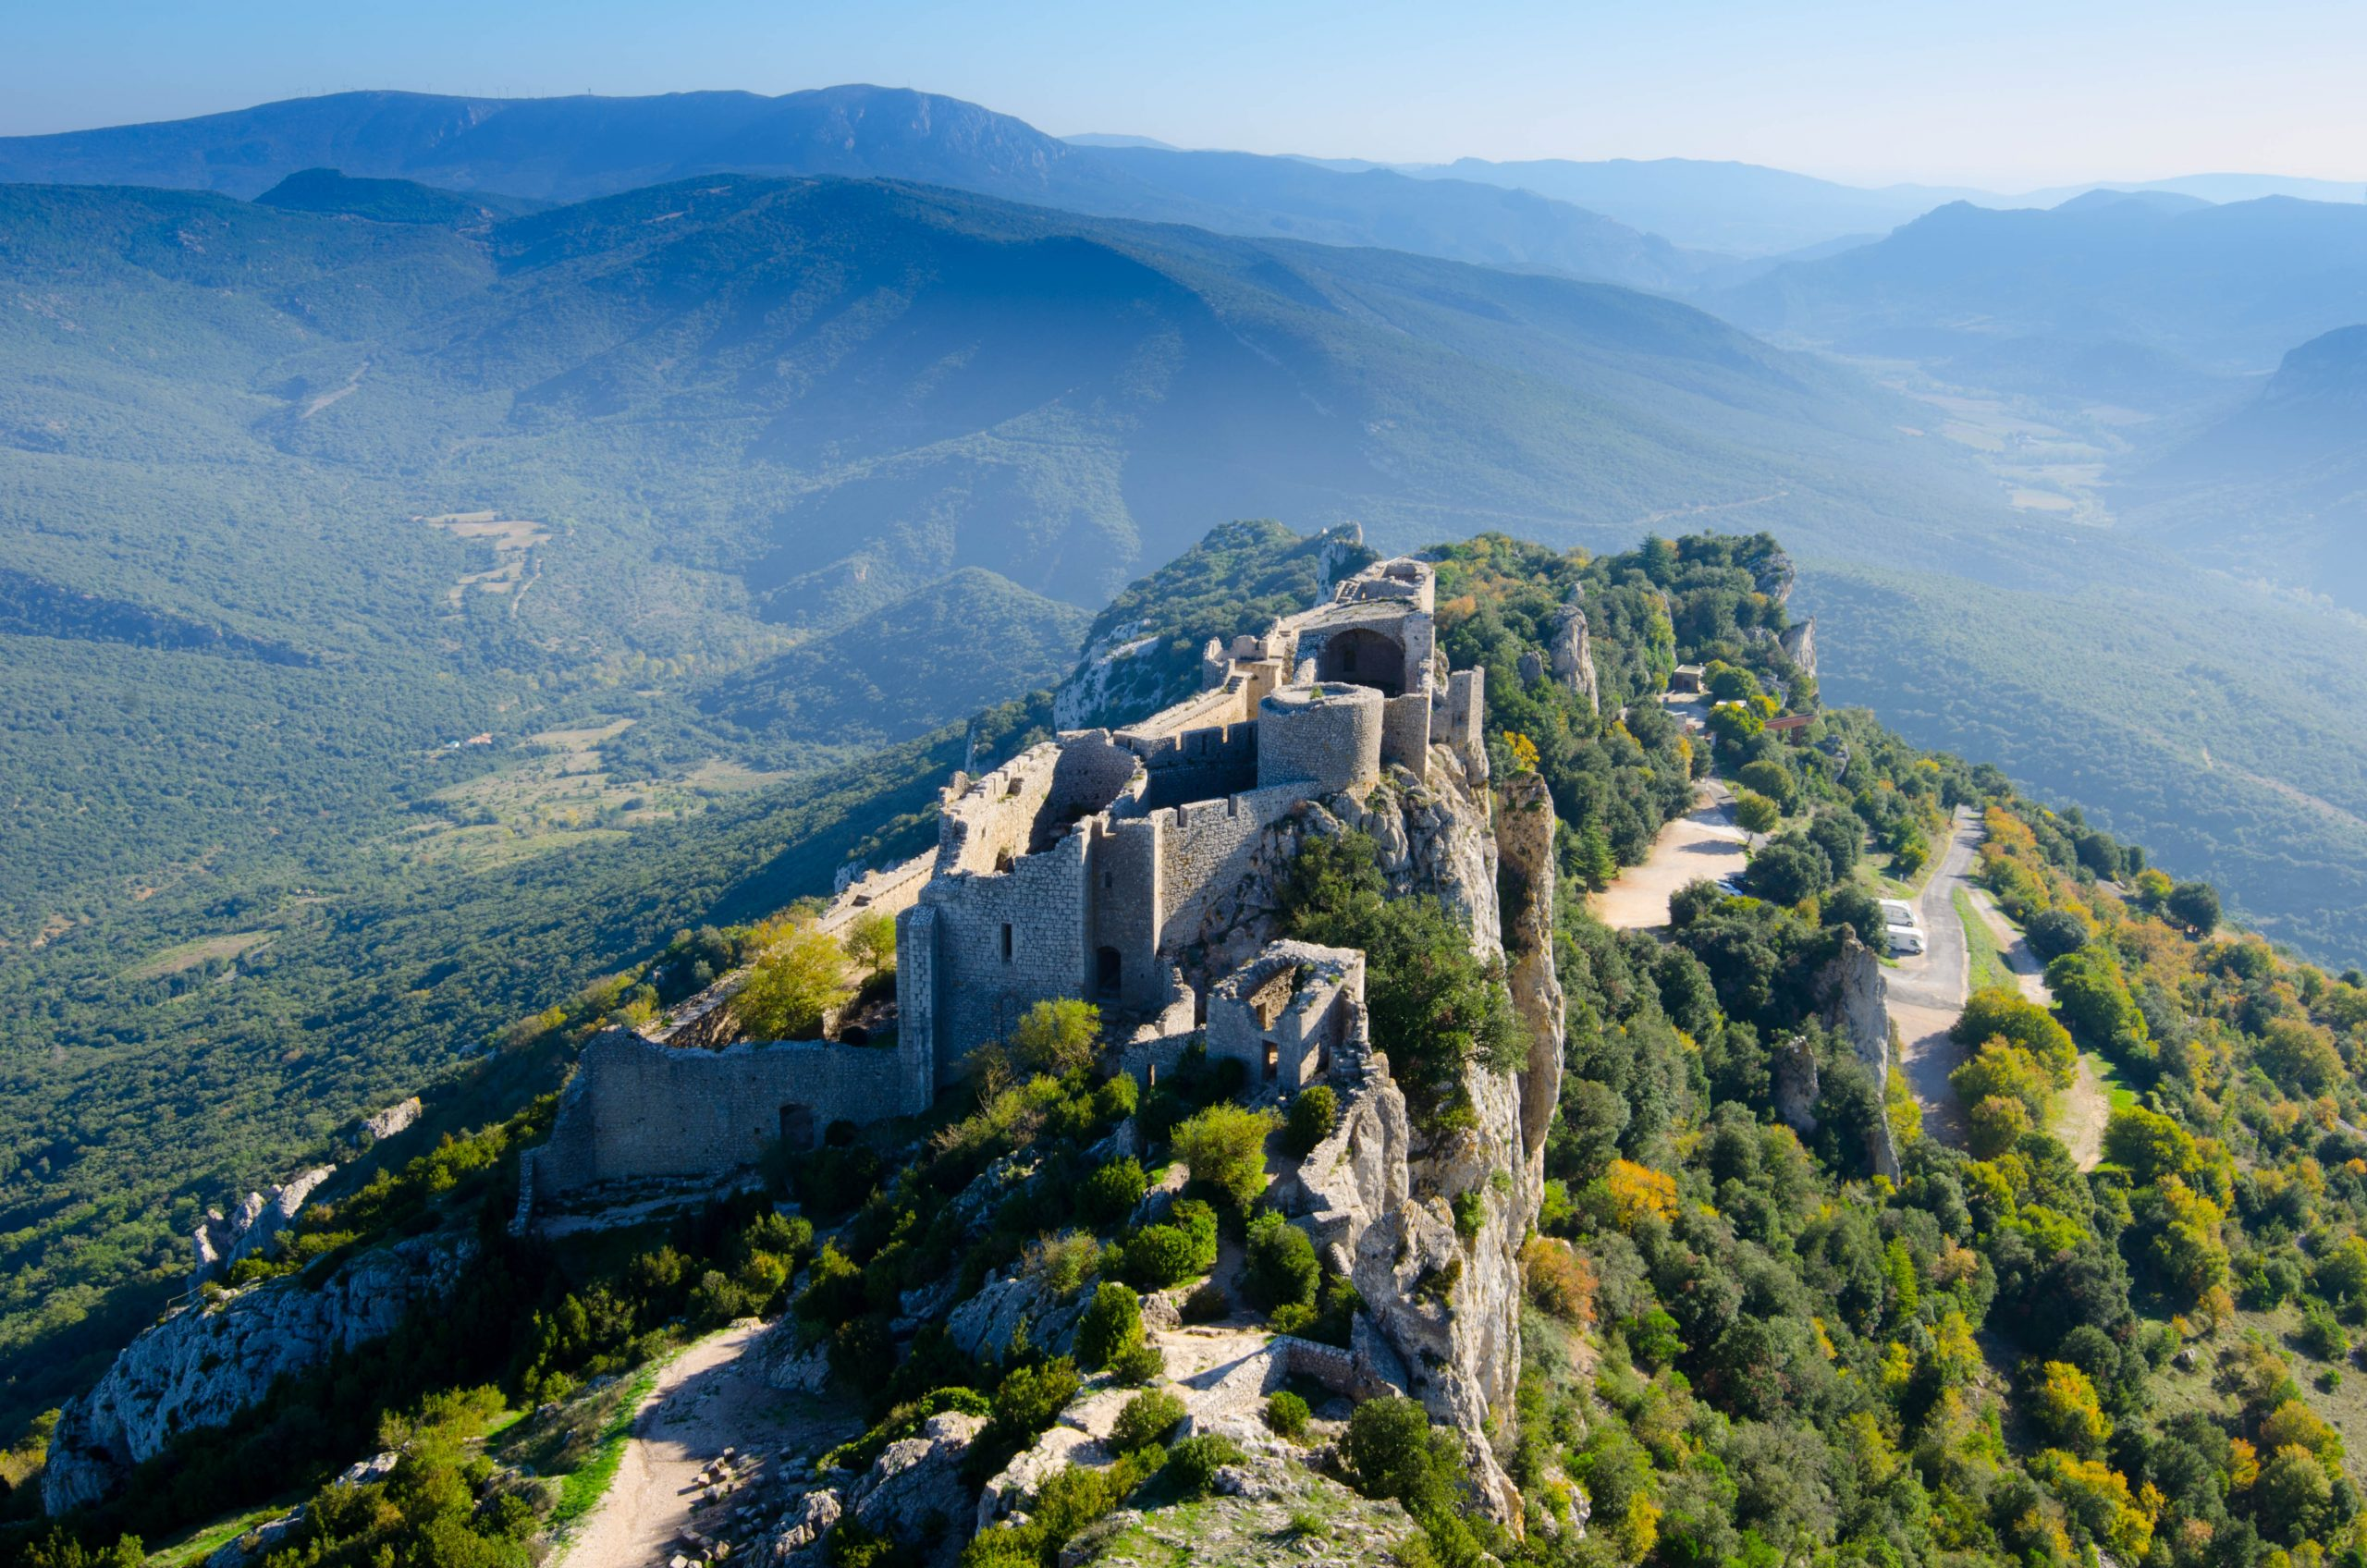 sightseeing flightover the Cathar castles in helicopter   Helipass ...